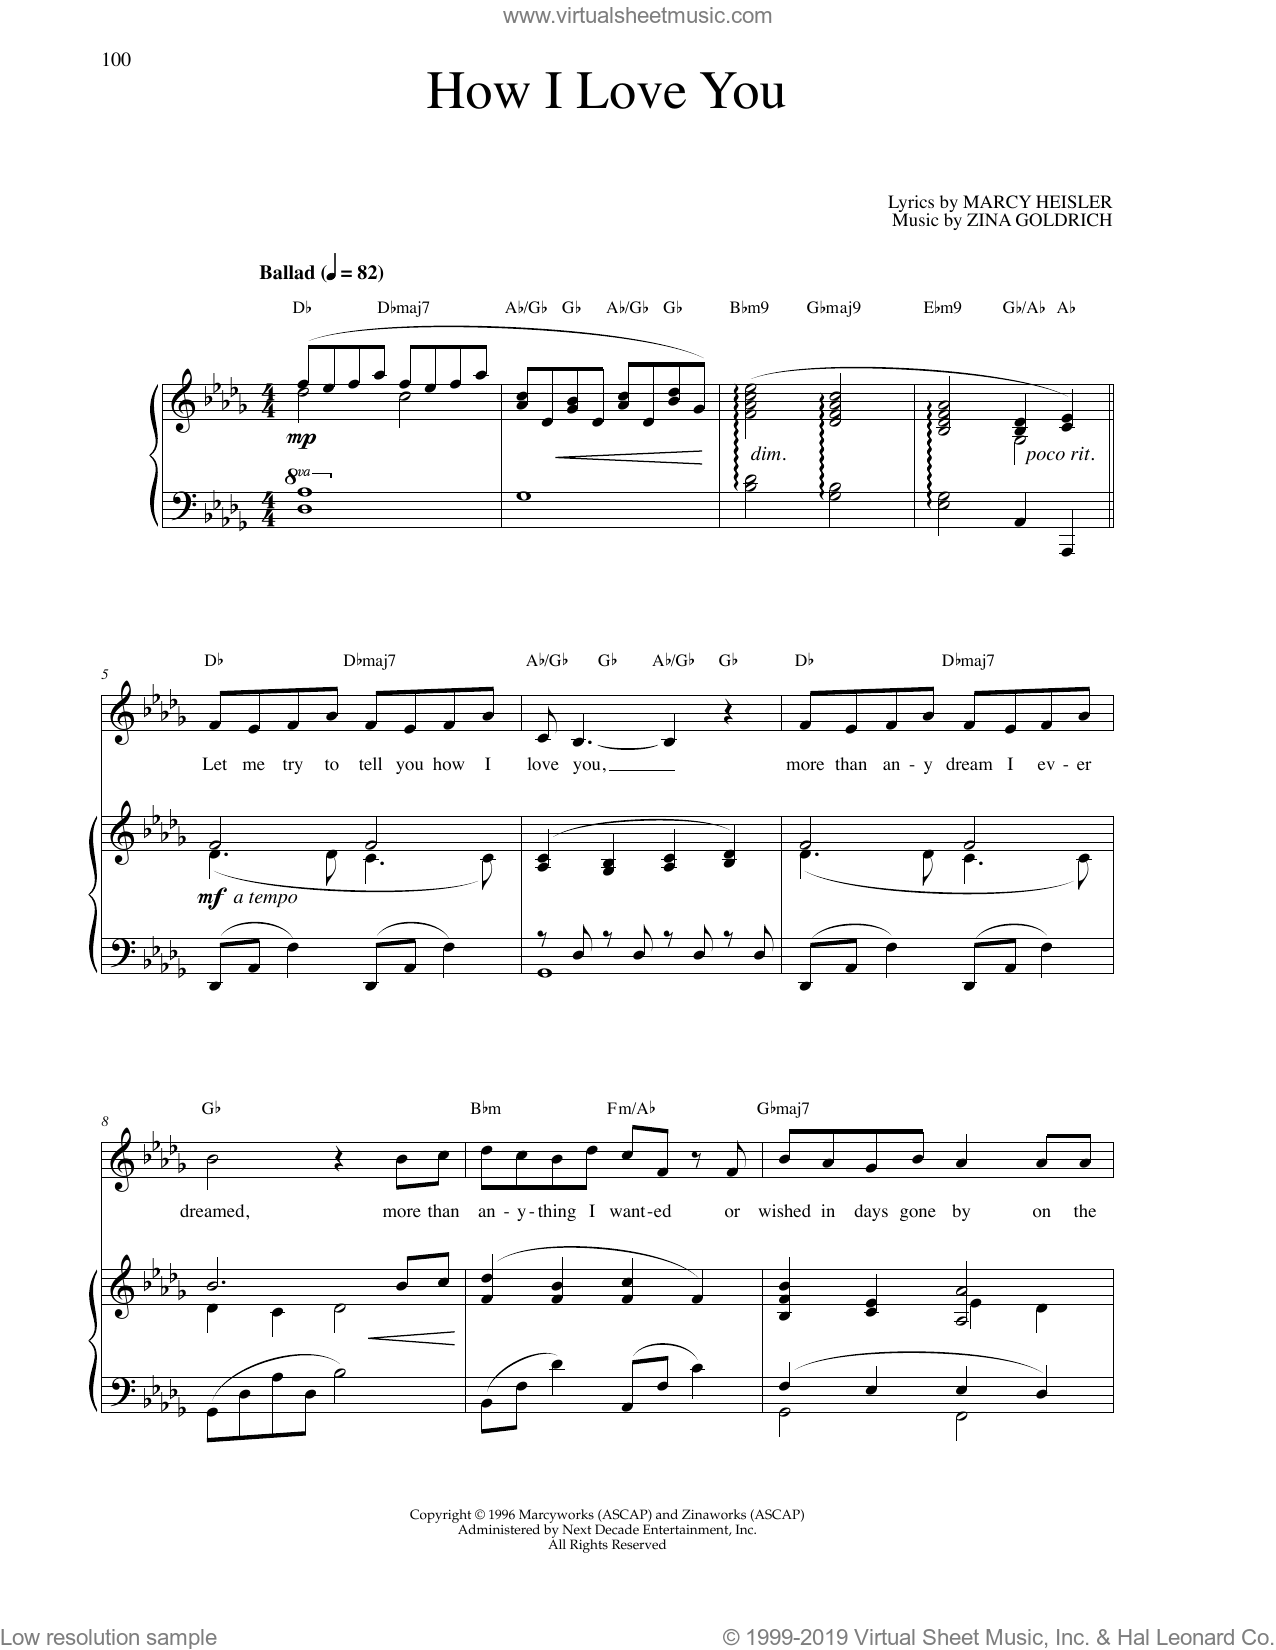 How I Love You sheet music for voice and piano by Zina Goldrich, Goldrich & Heisler and Marcy Heisler. Score Image Preview.